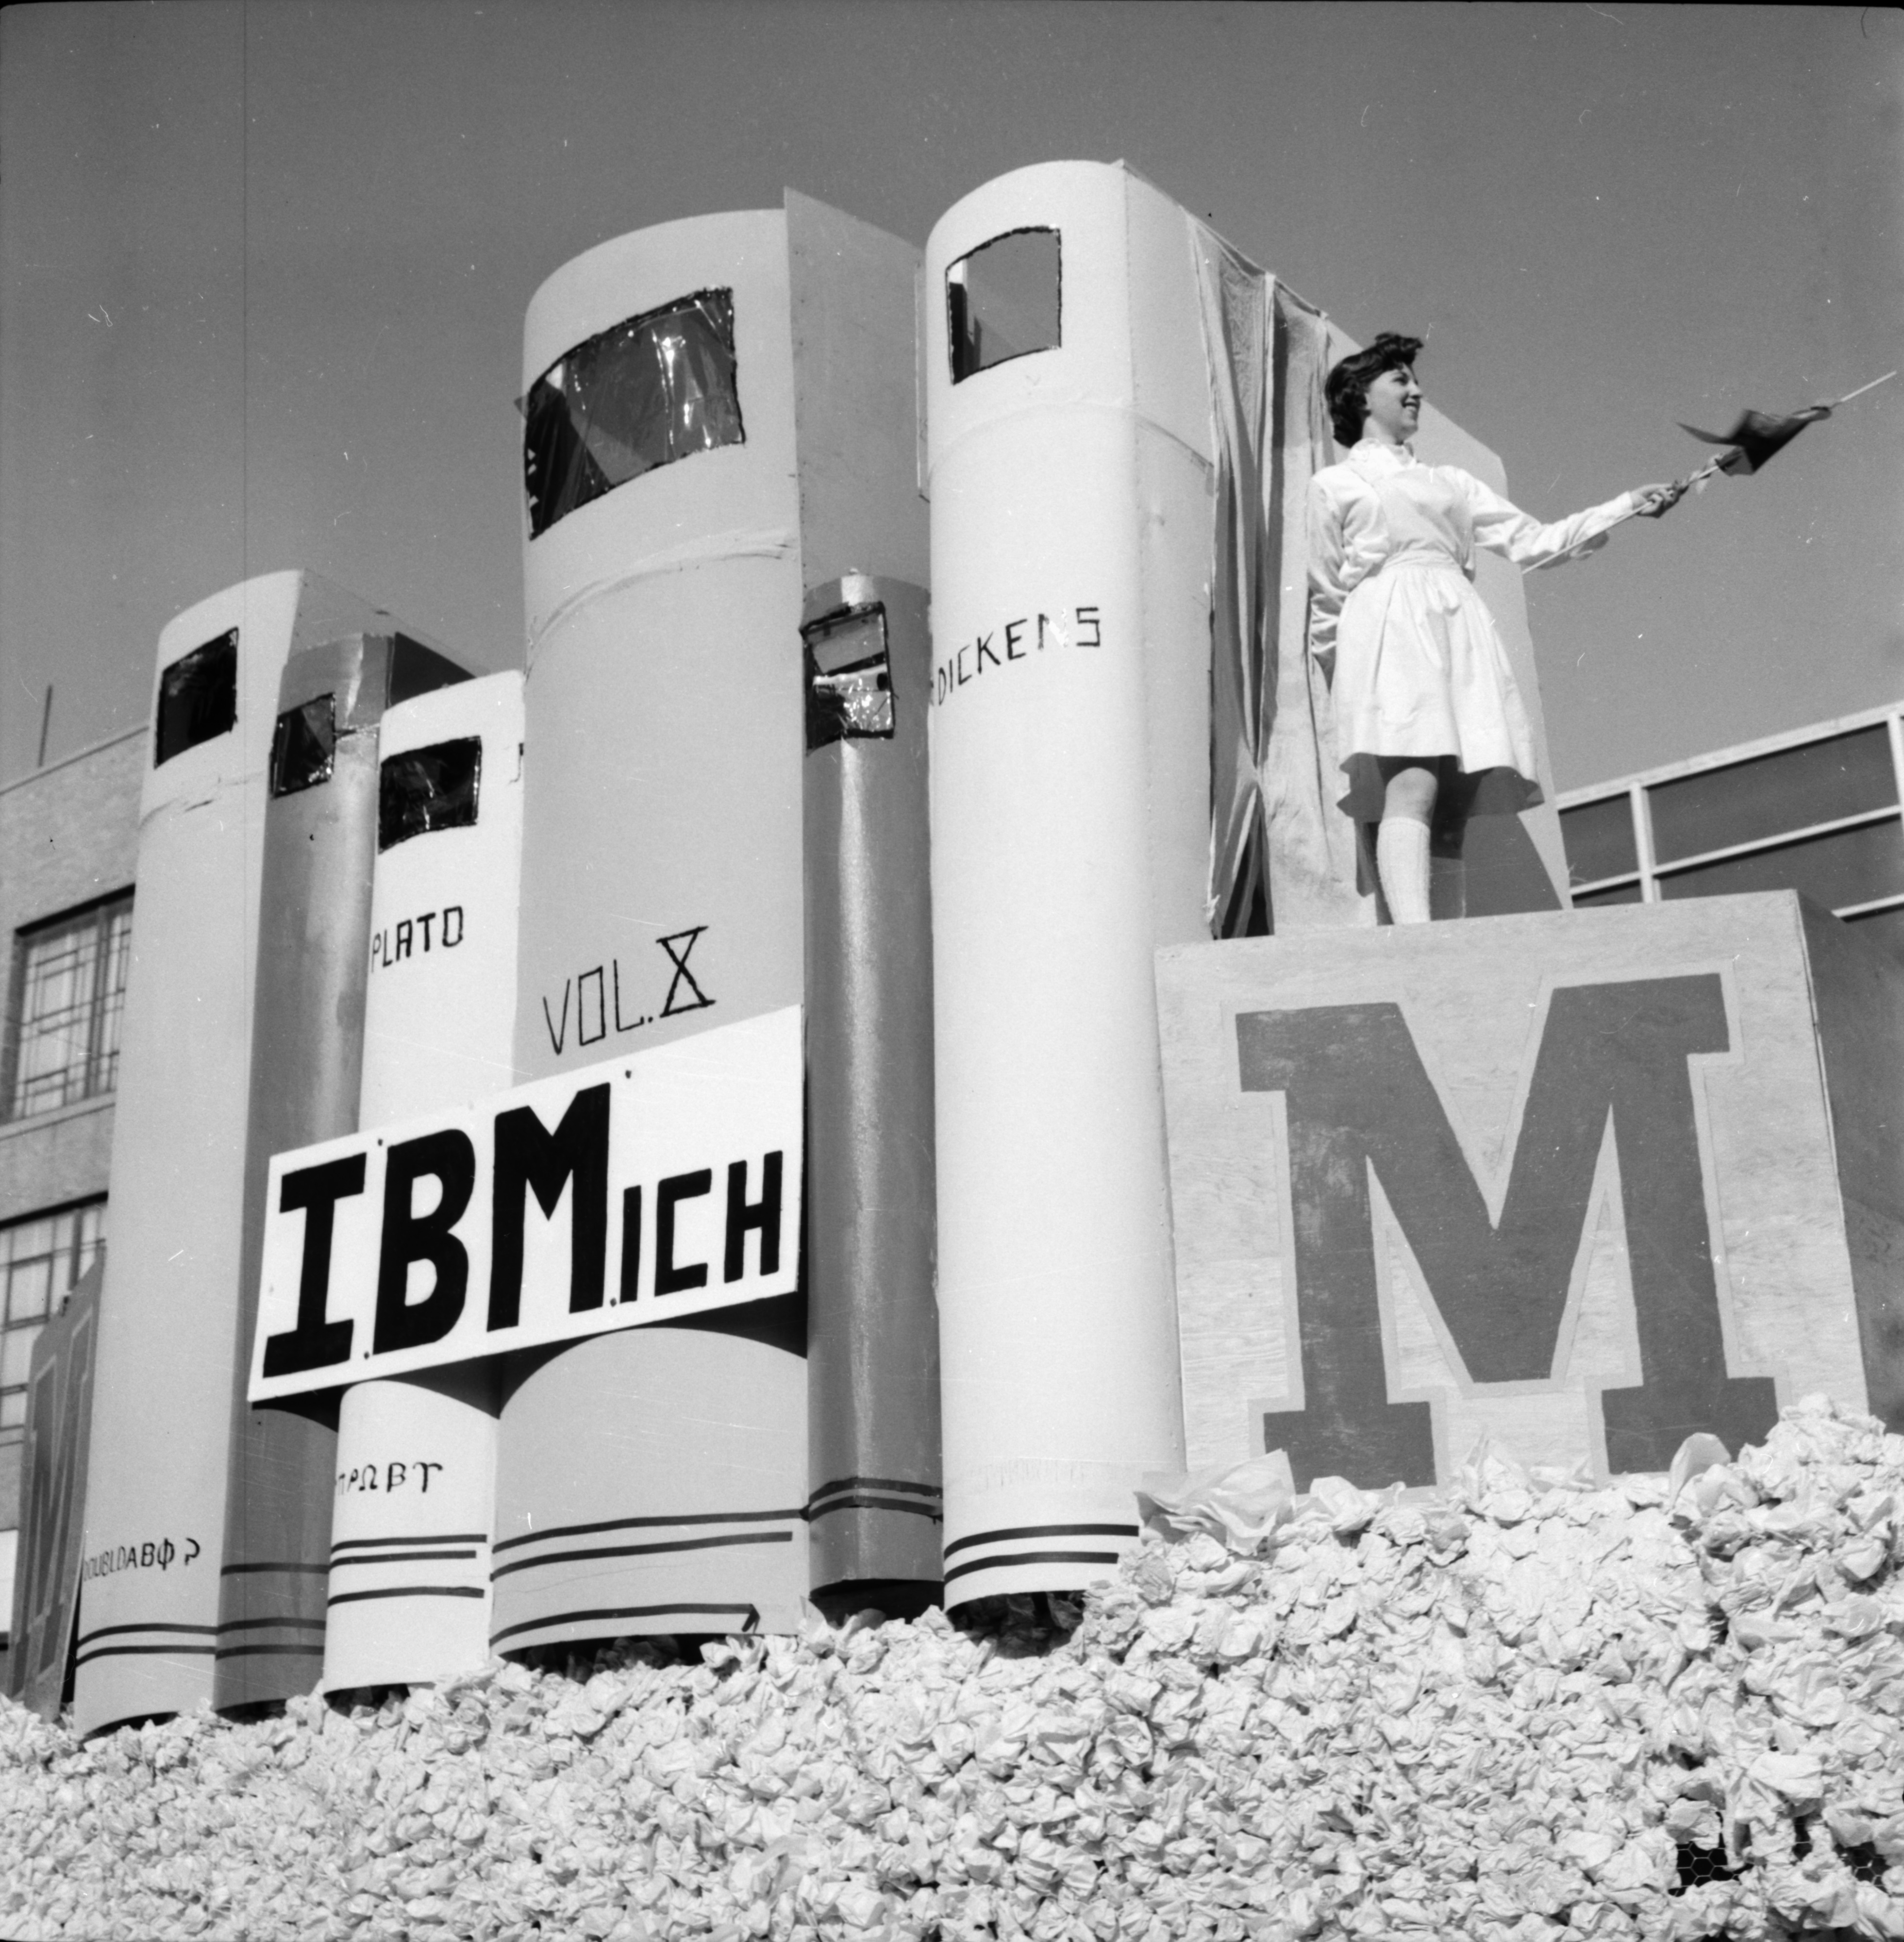 IBMich Float in the Michigras Parade, April 1958 image